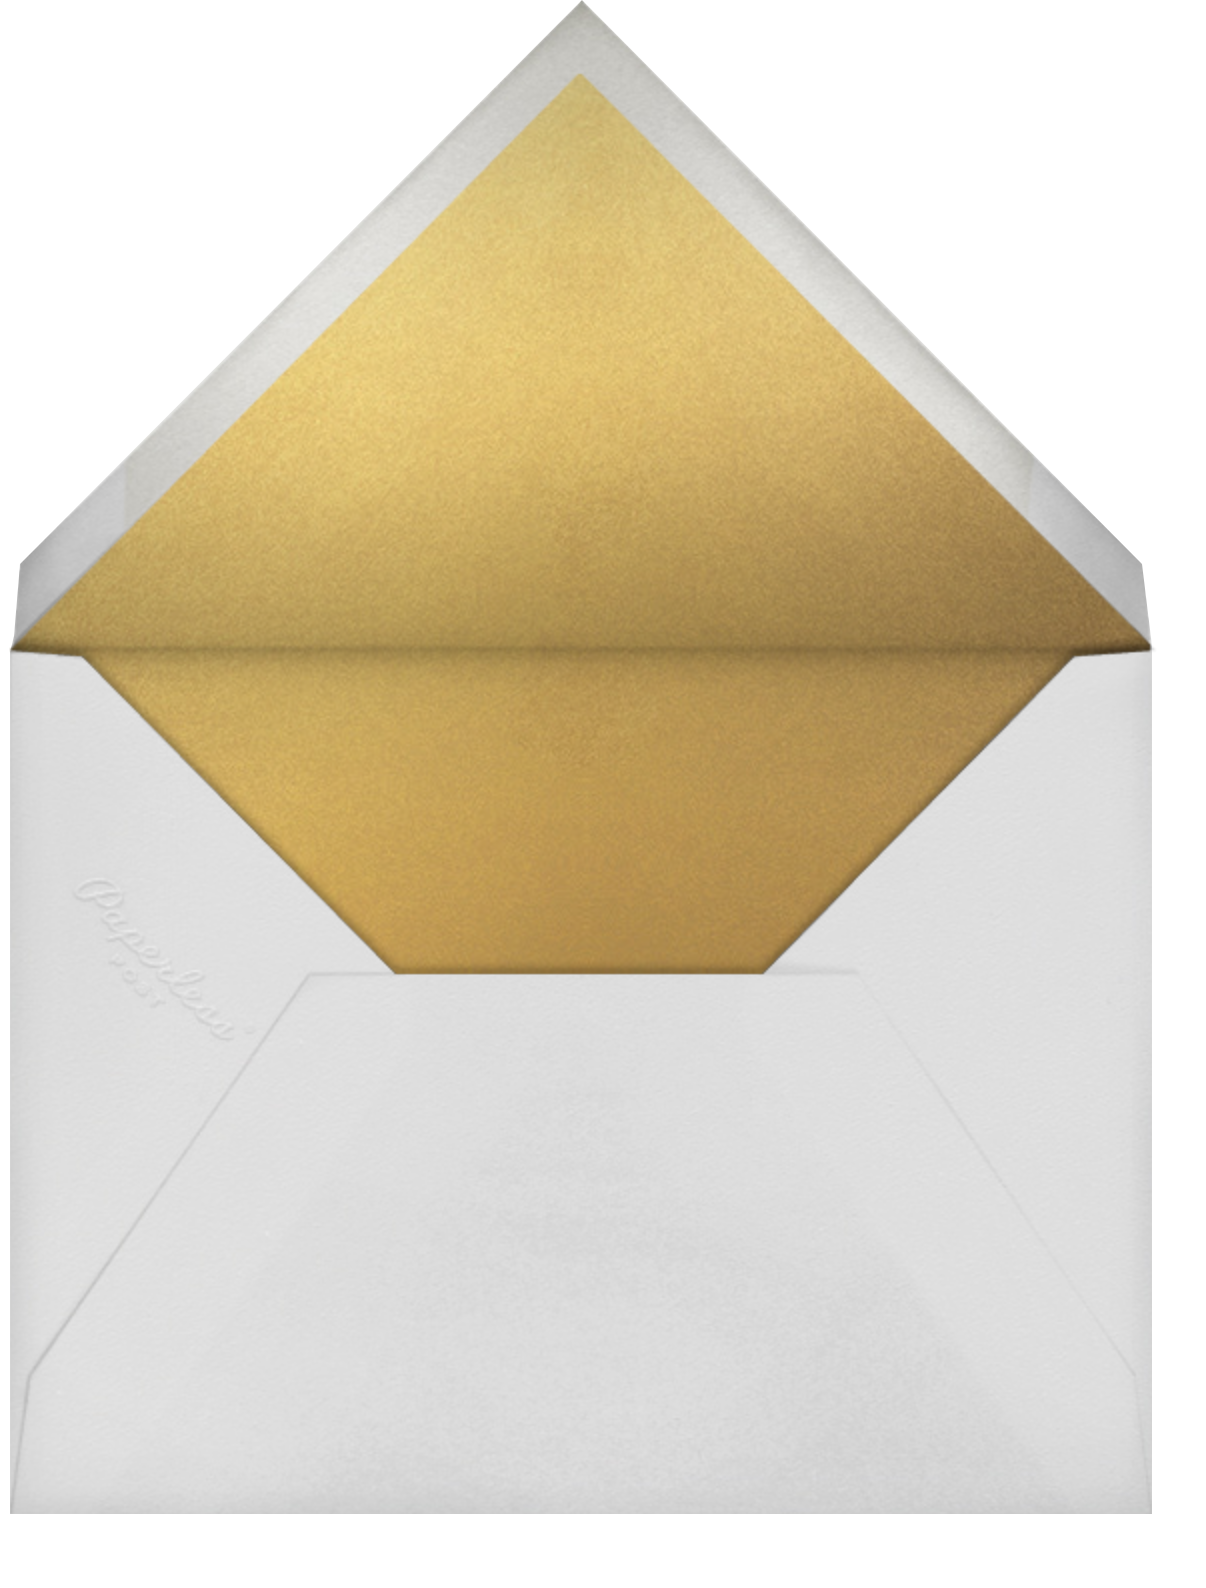 Winter Horizon - Paperless Post - Business holiday cards - envelope back